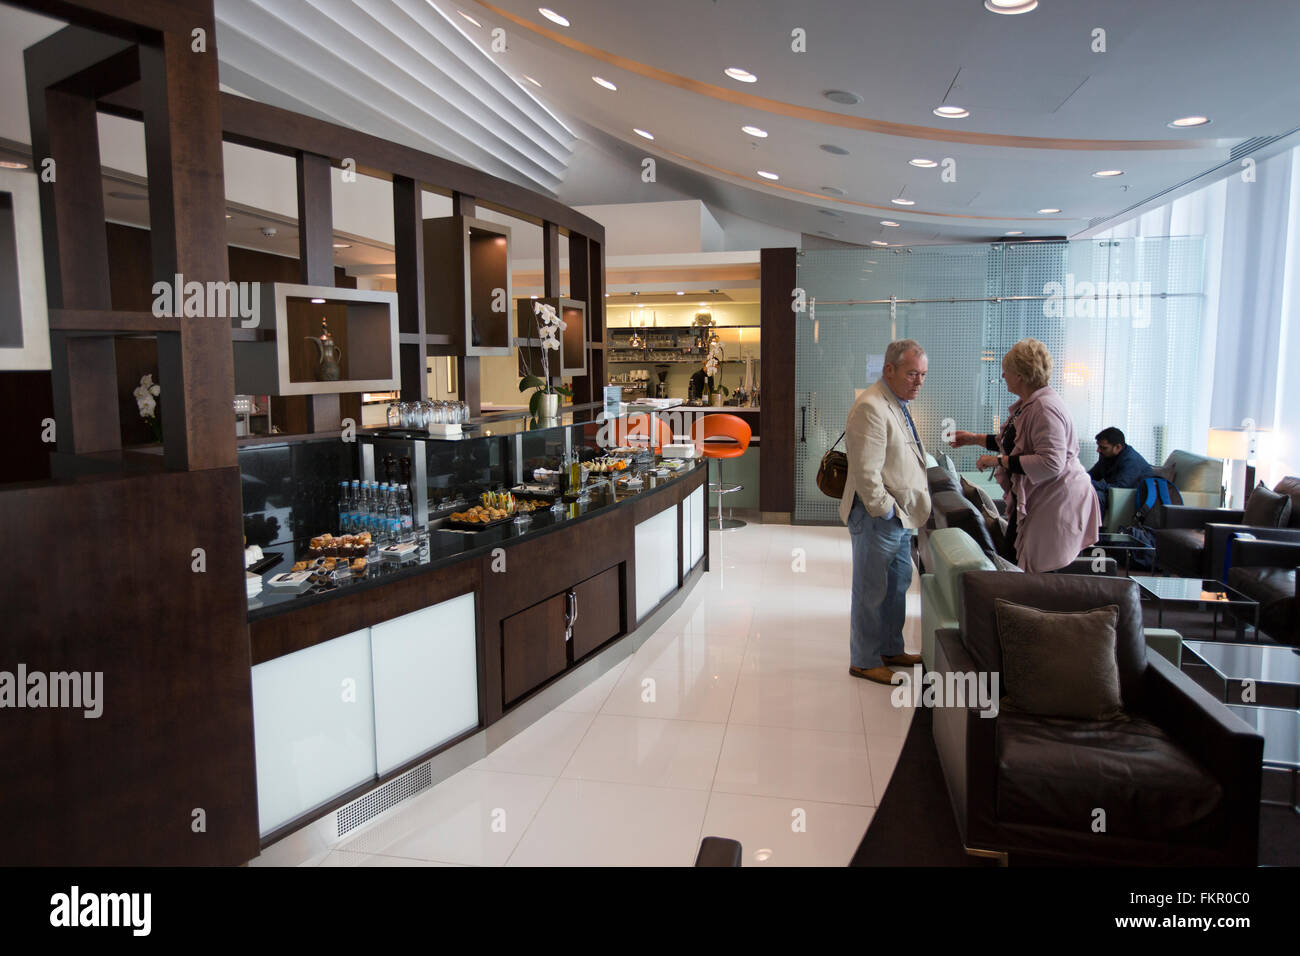 UK, England, Manchester Airport, Etihad Airline Business Class Lounge - Stock Image